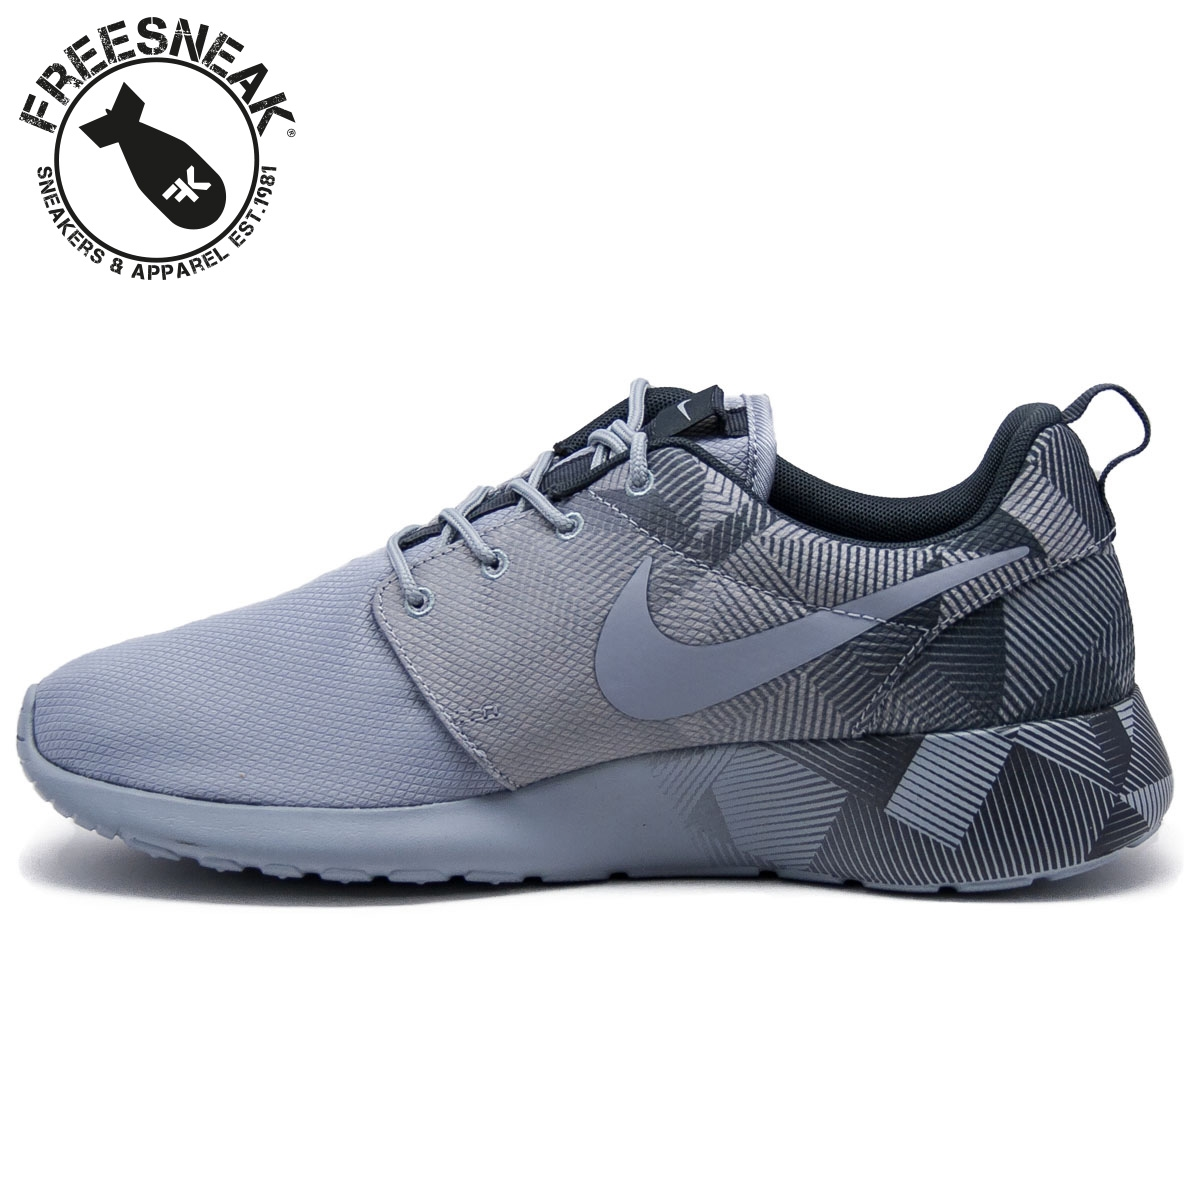 d044cb4ca9c29 NIKE - Roshe One print grey 655206-003 - Sneakers shoes man